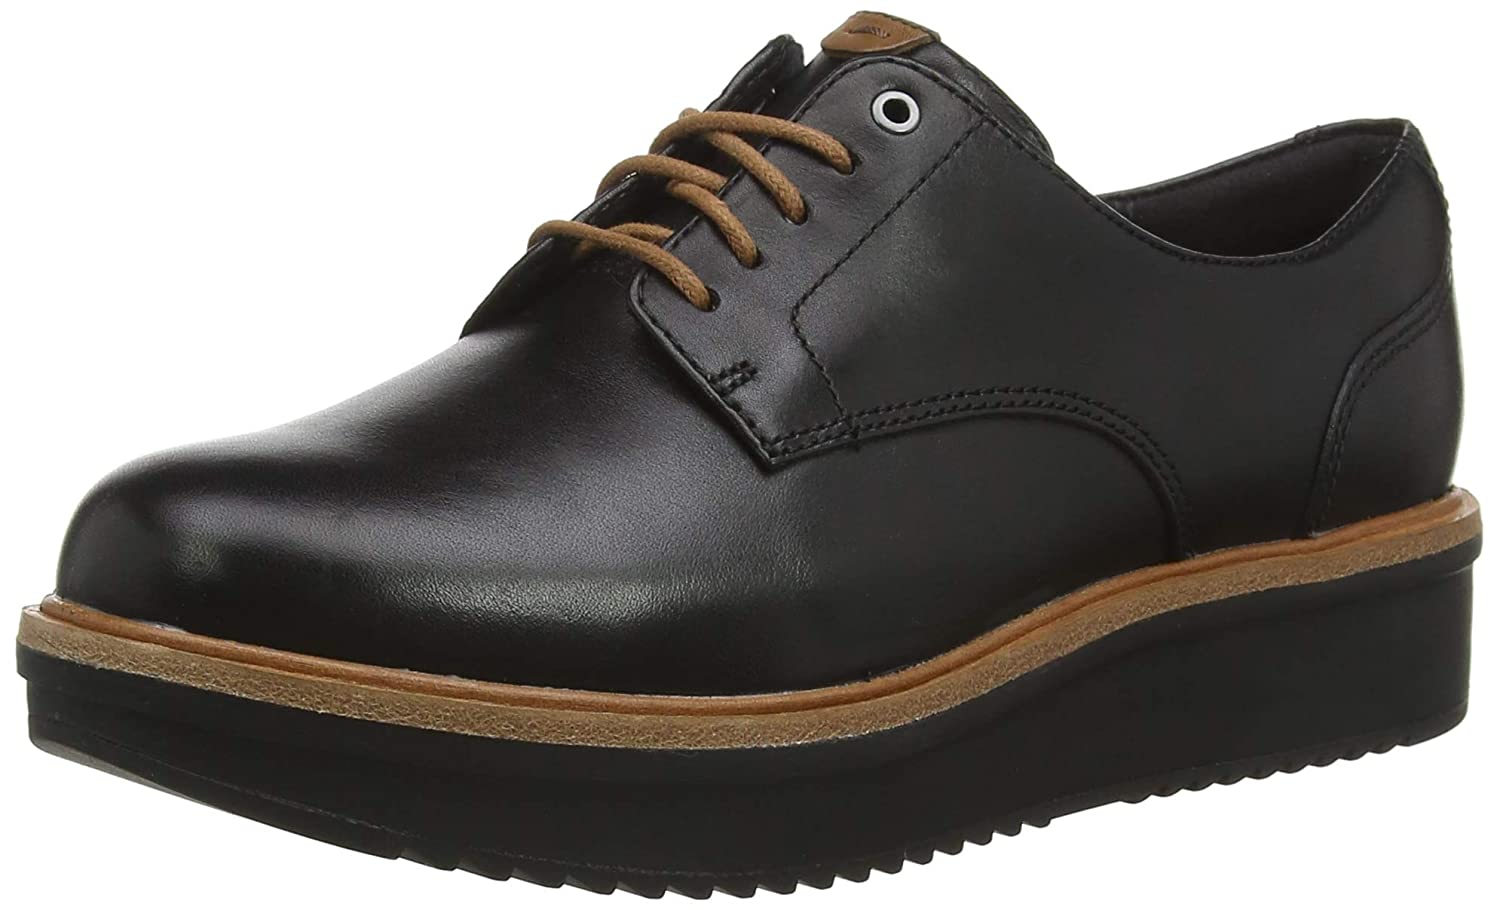 Clarks Teadale Rhea, Scarpe Stringate Brosso Donna Donna Donna | In Linea Outlet Store  db435a